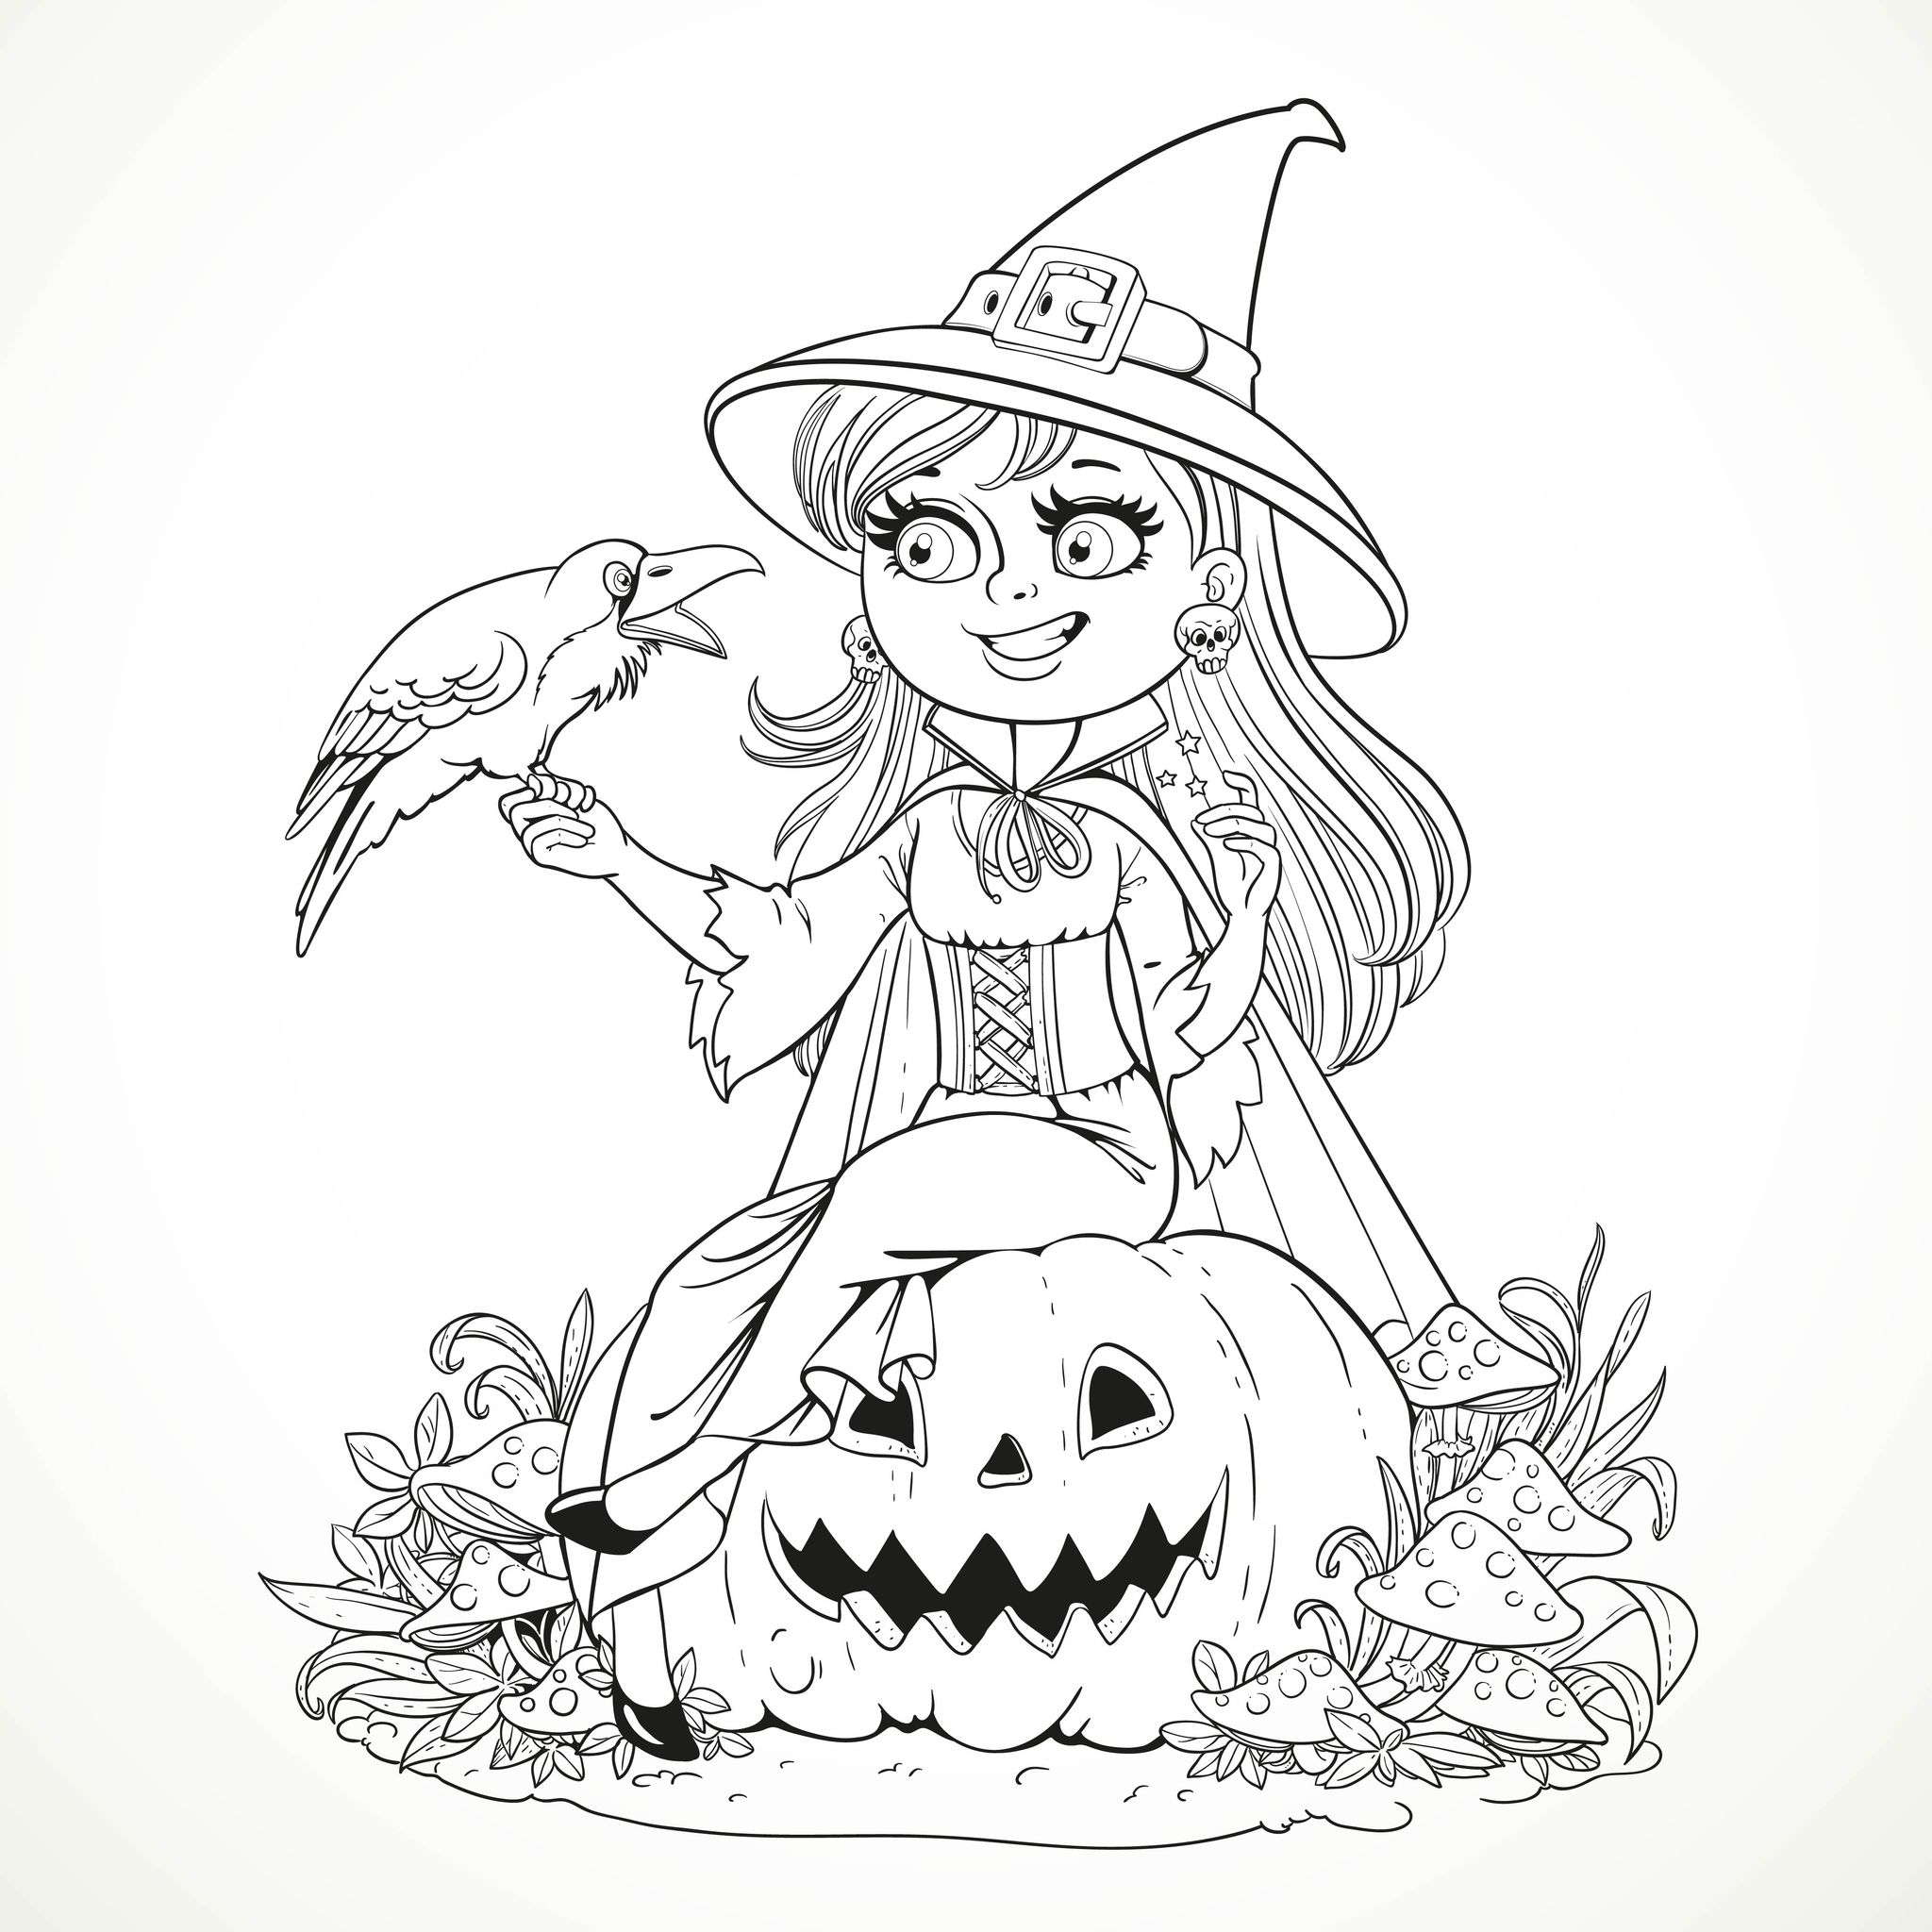 Coloring pages for halloween coloring contest - Coloring Halloween Smiling Witch And Crow By Azuzl